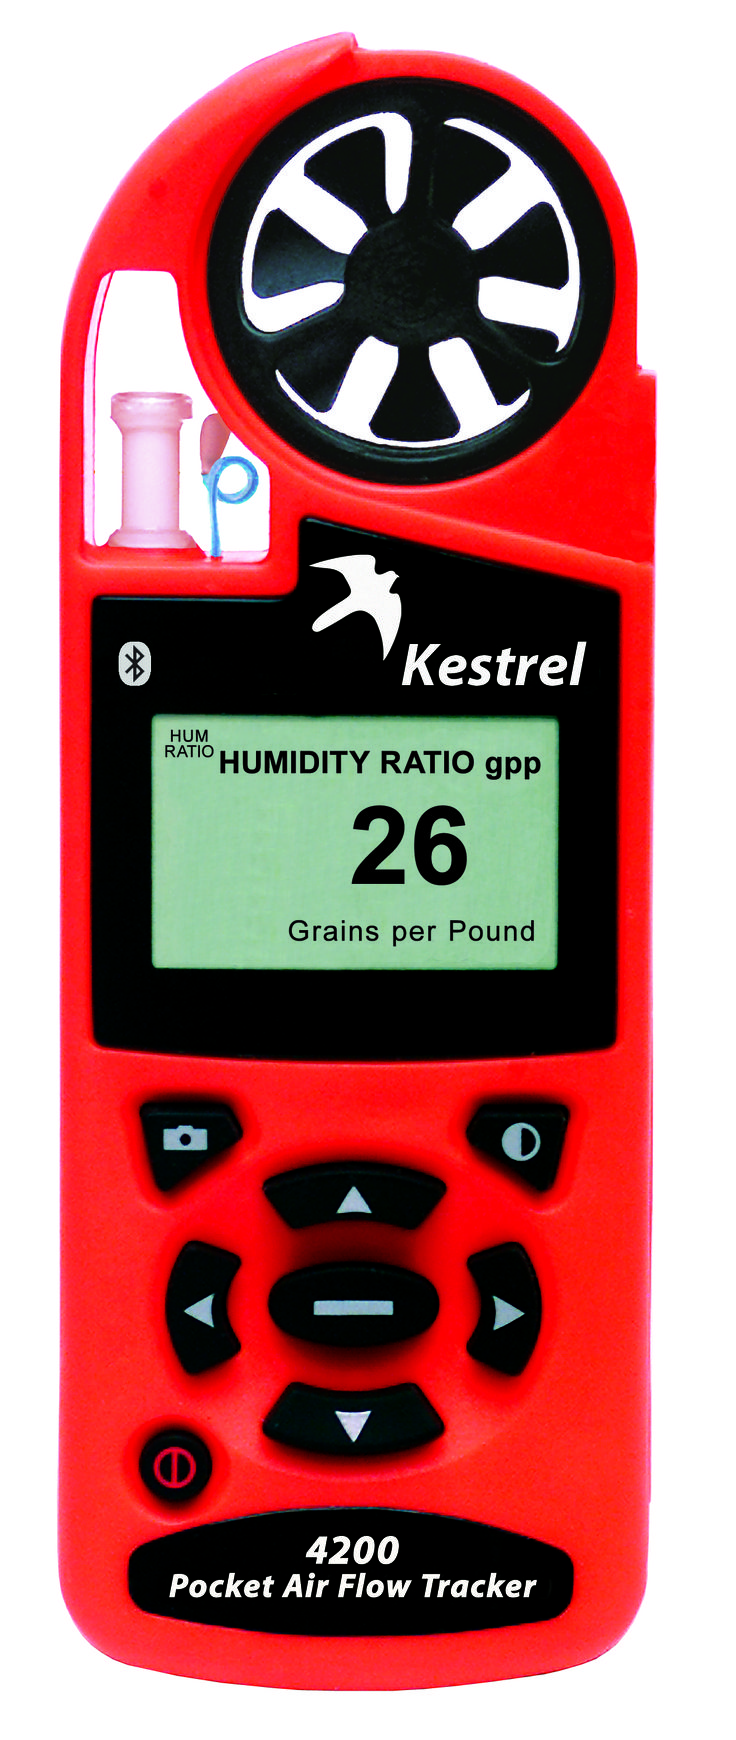 The Kestrel 4200 Pocket Air Flow Tracker monitors and reports an extensive list of environmental parameters — from temperature (Celsius or Fahrenheit) to barometric pressure, altitude, relative humidity, and more**. Like all Kestrel 4000-series meters, the Kestrel 4200 also stores that information and even charts up to 2000 data points for later analysis. The Kestrel 4200 has all available monitoring functions of the Kestrel 4000, plus Humidity Ratio and Air flow (CFM).